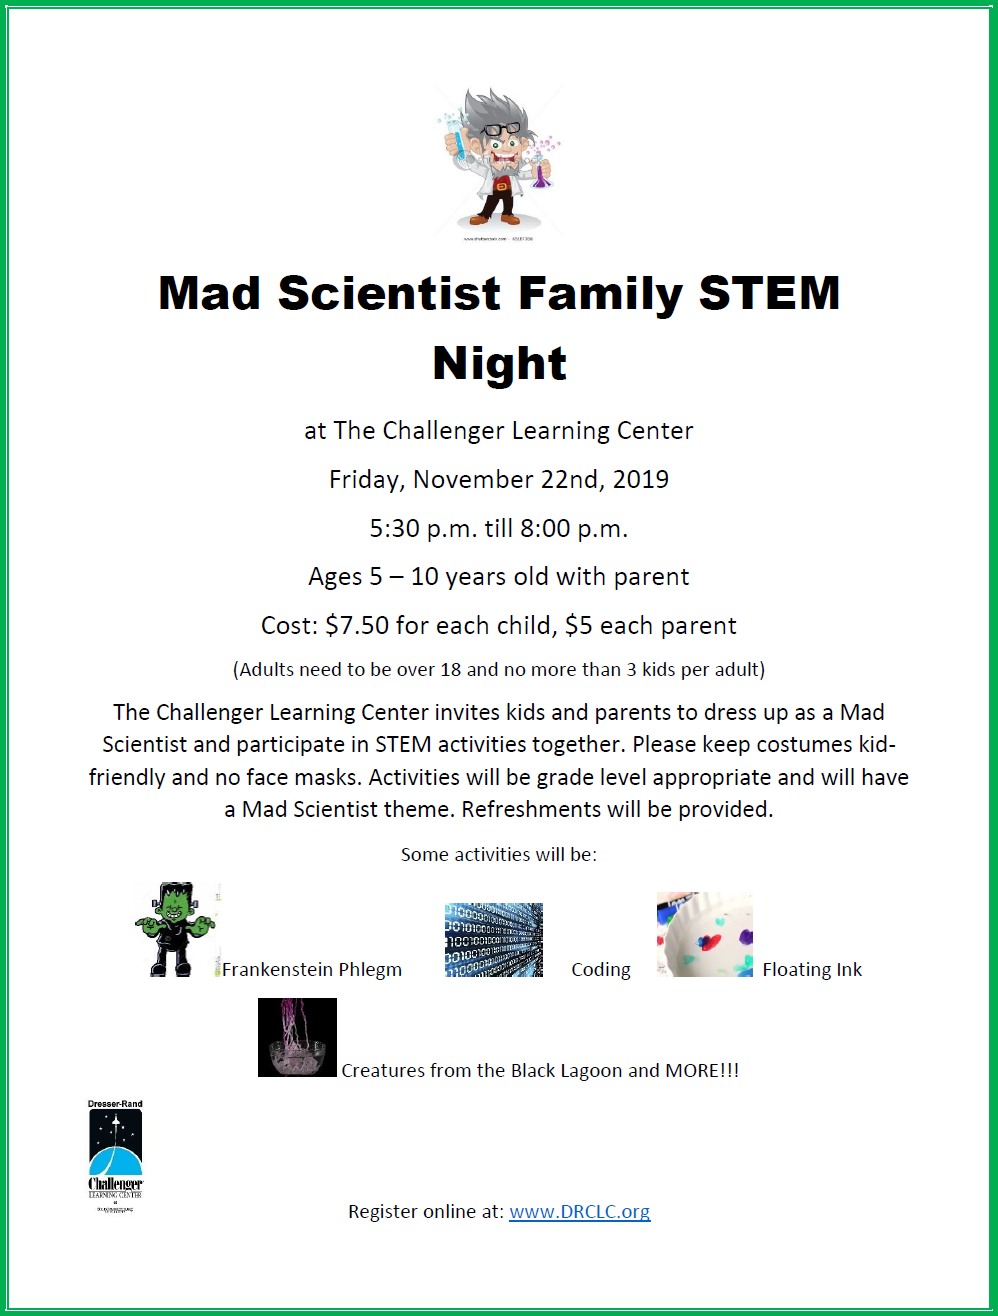 Mad Scientist Family STEM Night flyer.png